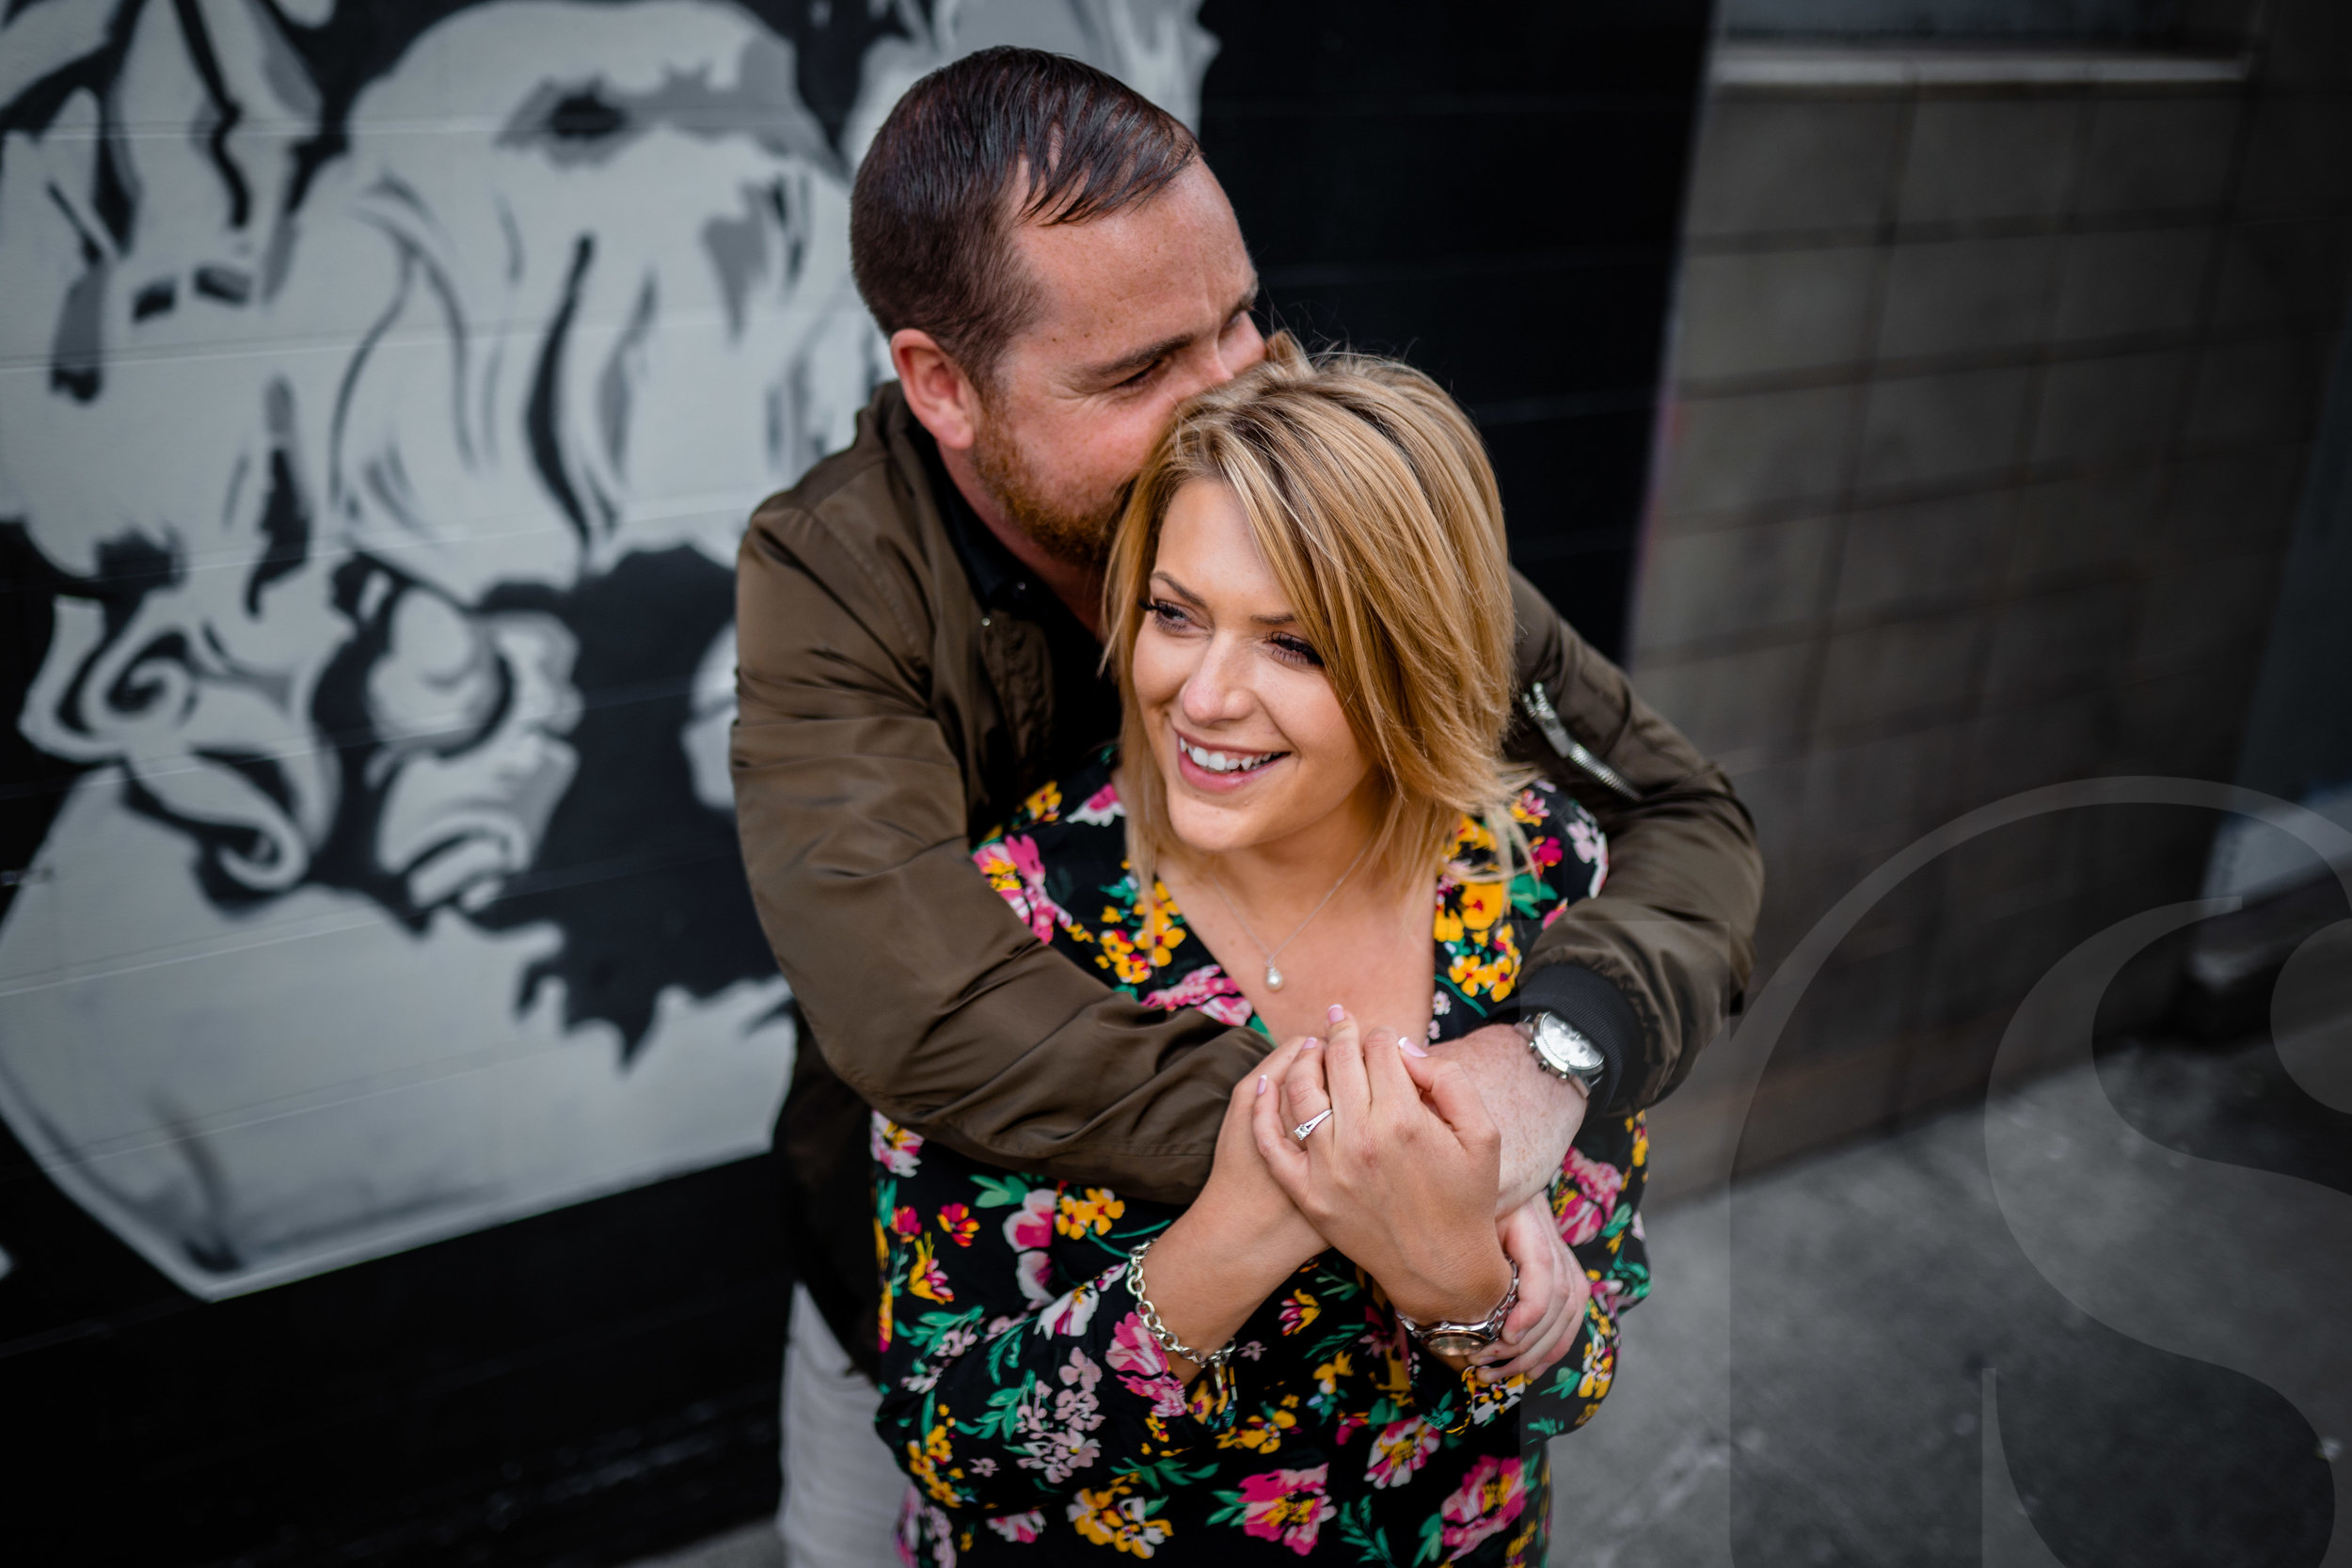 dublin-engagement-shoot-6.jpg